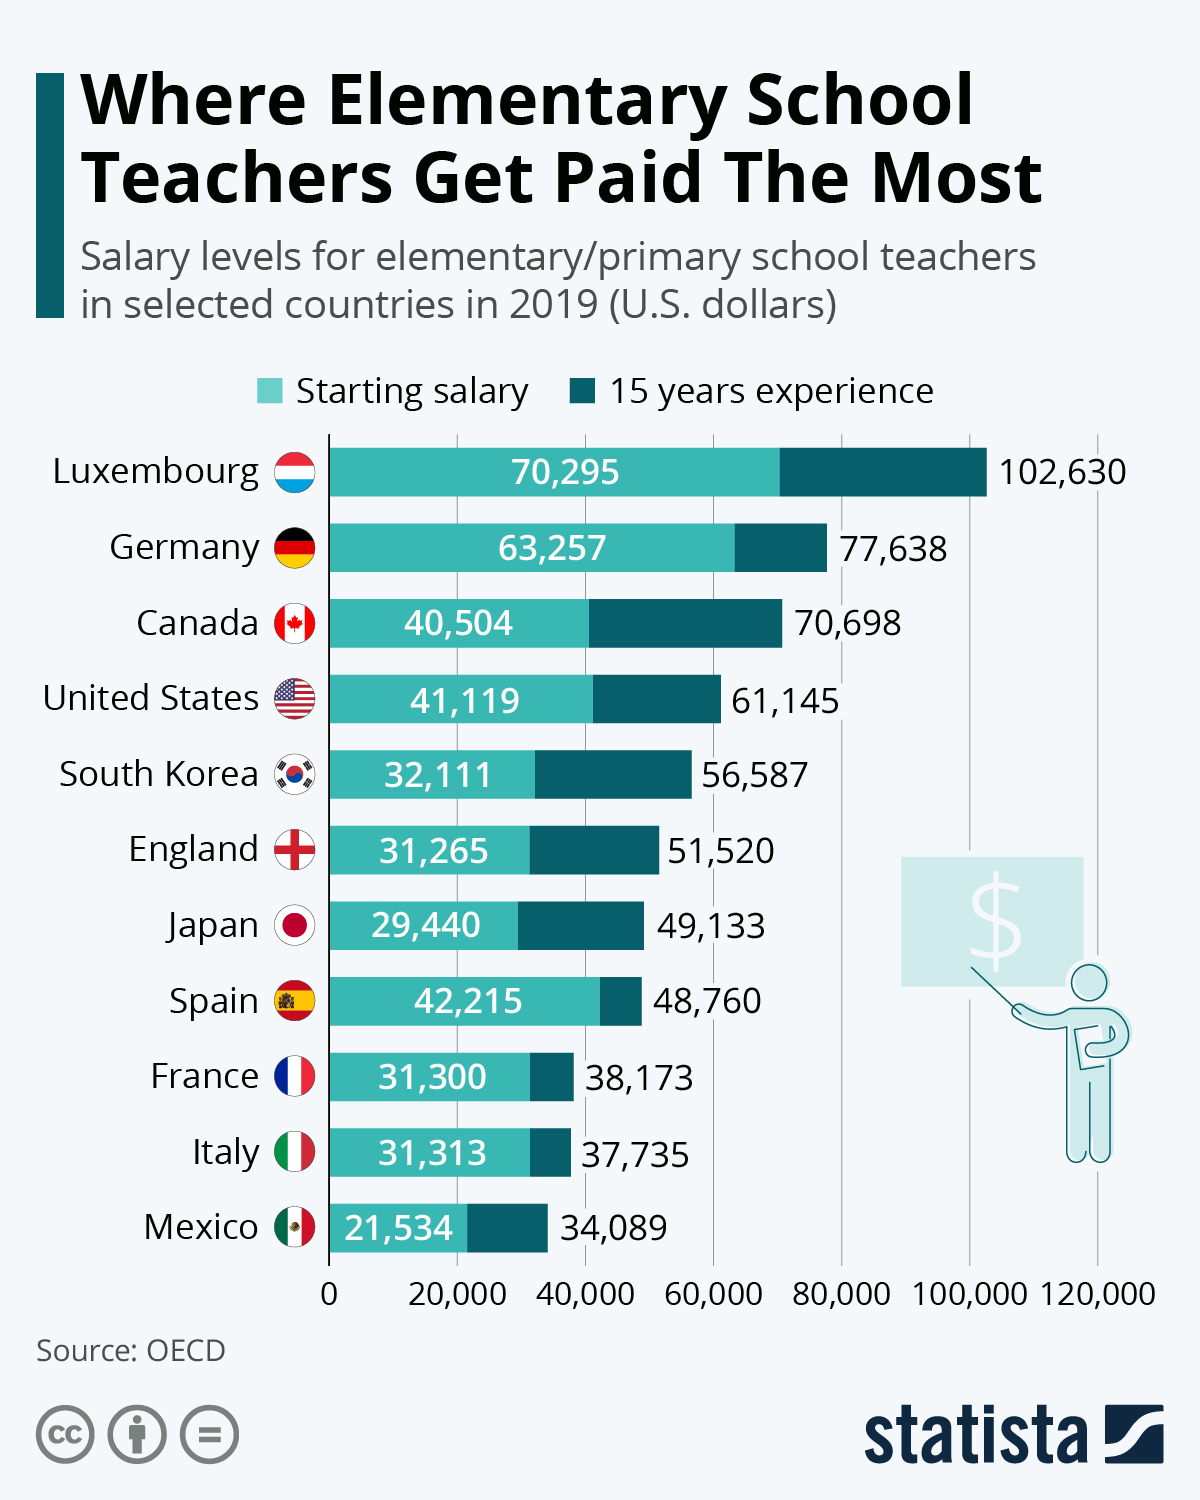 Where Elementary School Teachers Get Paid The Most